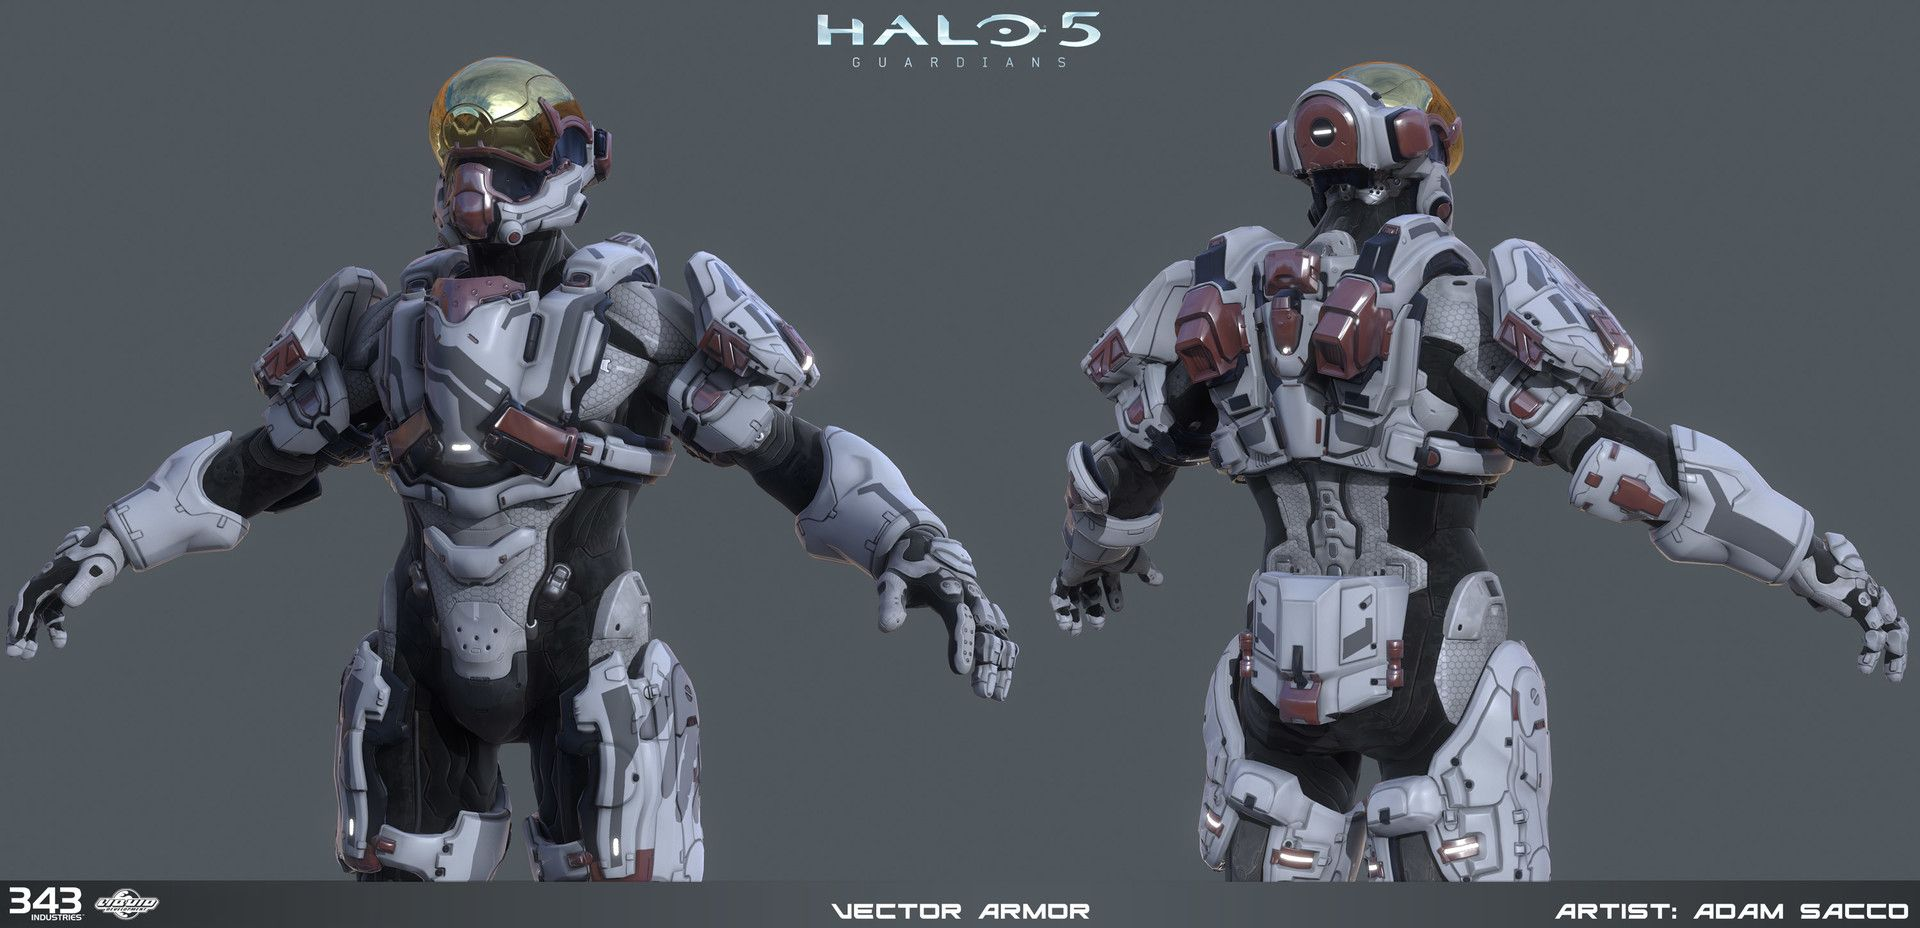 ArtStation - Halo 5 - Vector armor - 3d game model, Adam Sacco